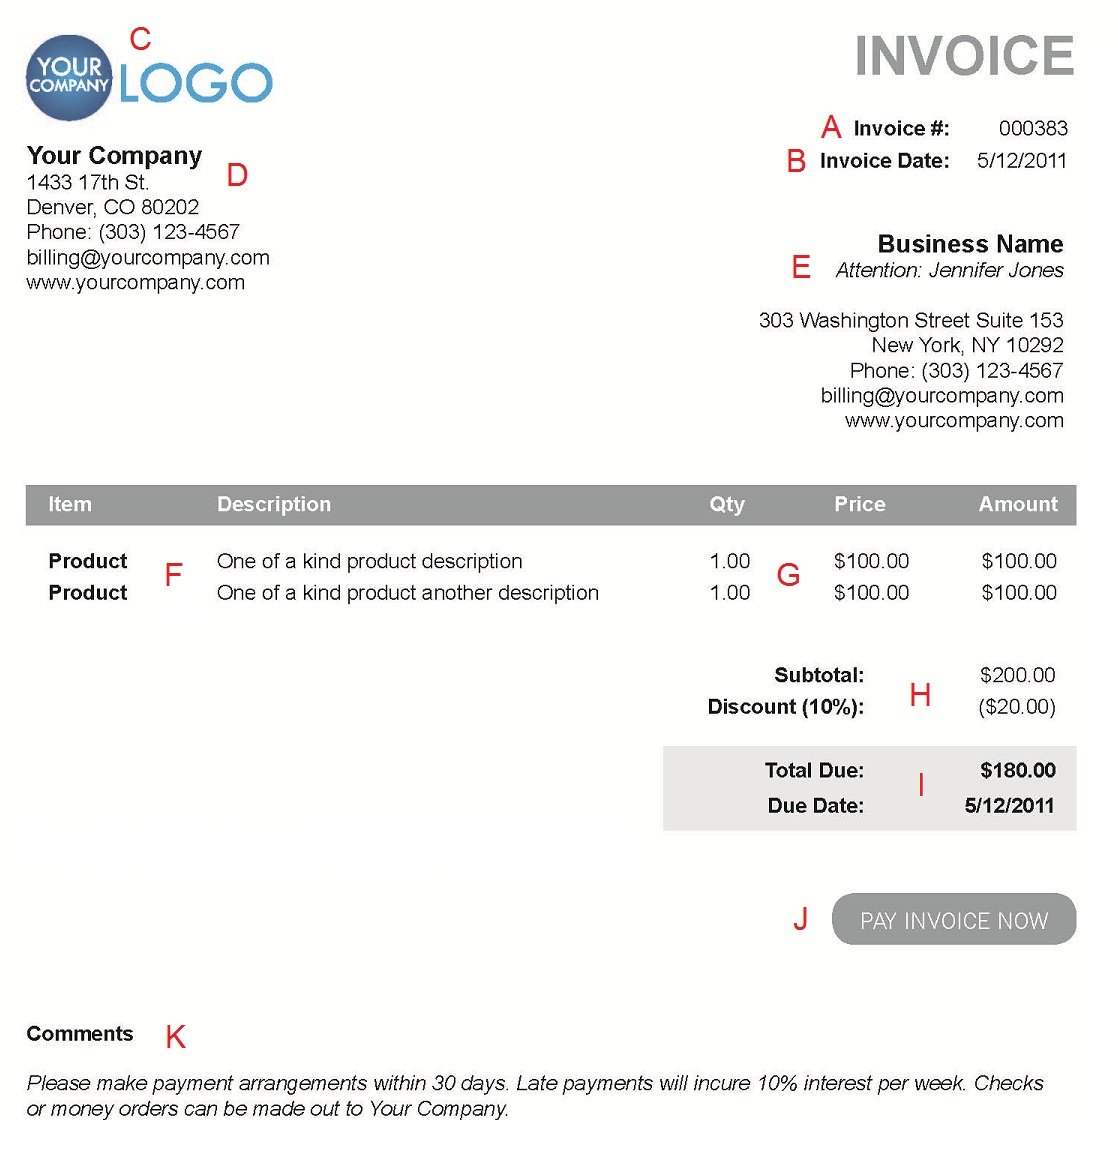 Gpwaus  Stunning The  Different Sections Of An Electronic Payment Invoice With Excellent A  With Cute Making A Receipt In Word Also Rental Receipt Example In Addition No Receipts For Tax Return And Format Rent Receipt As Well As Cash Receipts And Cash Disbursements Additionally House Rent Receipt Download From Paysimplecom With Gpwaus  Excellent The  Different Sections Of An Electronic Payment Invoice With Cute A  And Stunning Making A Receipt In Word Also Rental Receipt Example In Addition No Receipts For Tax Return From Paysimplecom